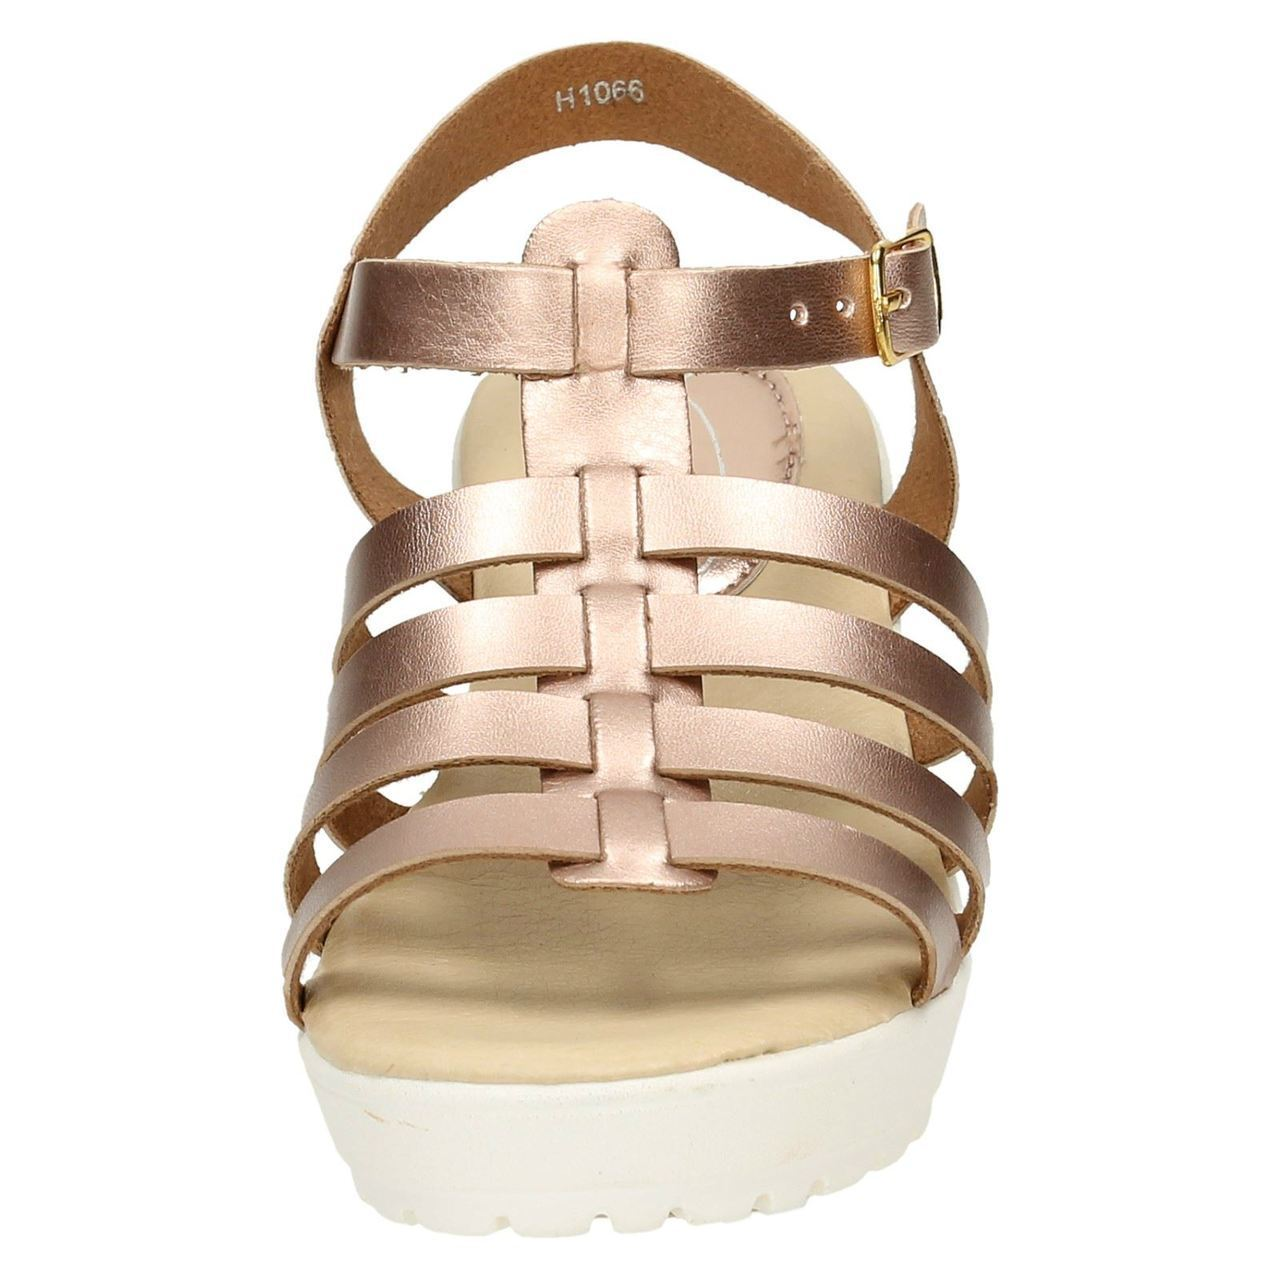 Girls Spot On H1066 Slingback Gladiator Sandals Style ~ K